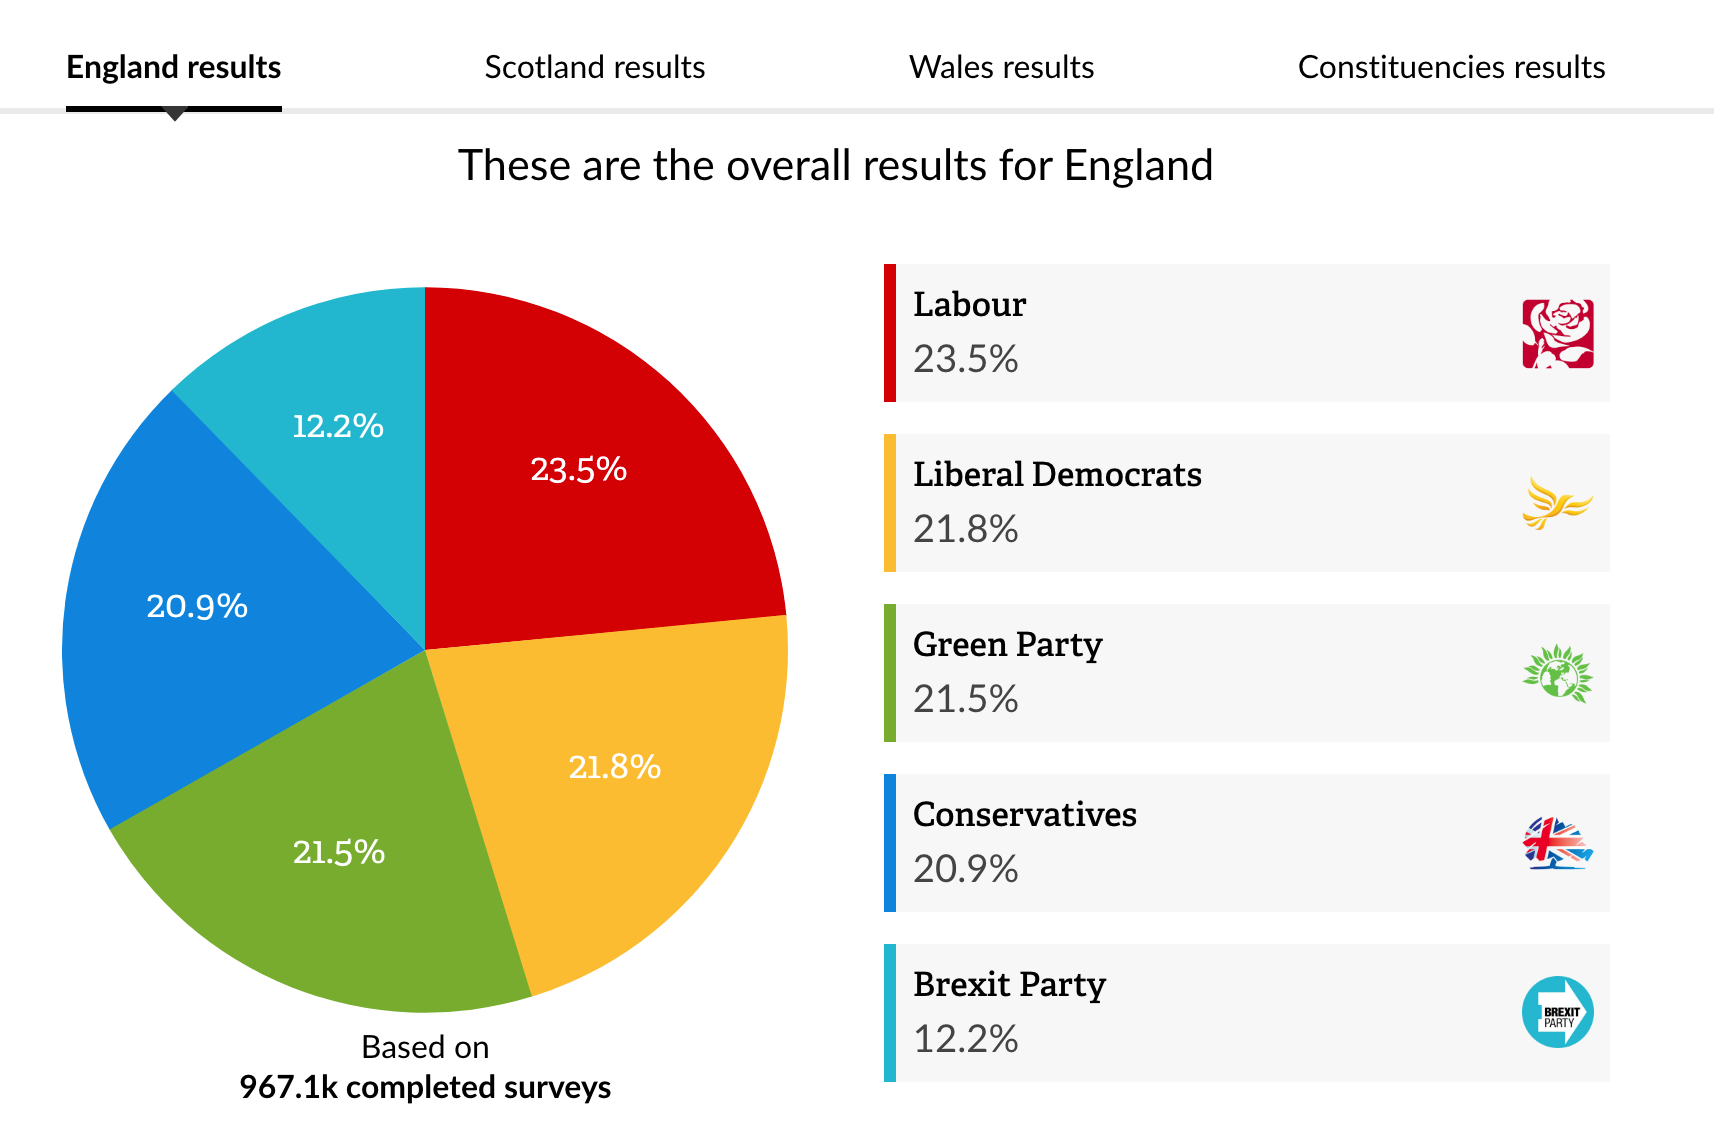 Screenshot showing the results for England from our 2019 manifesto comparison survey.